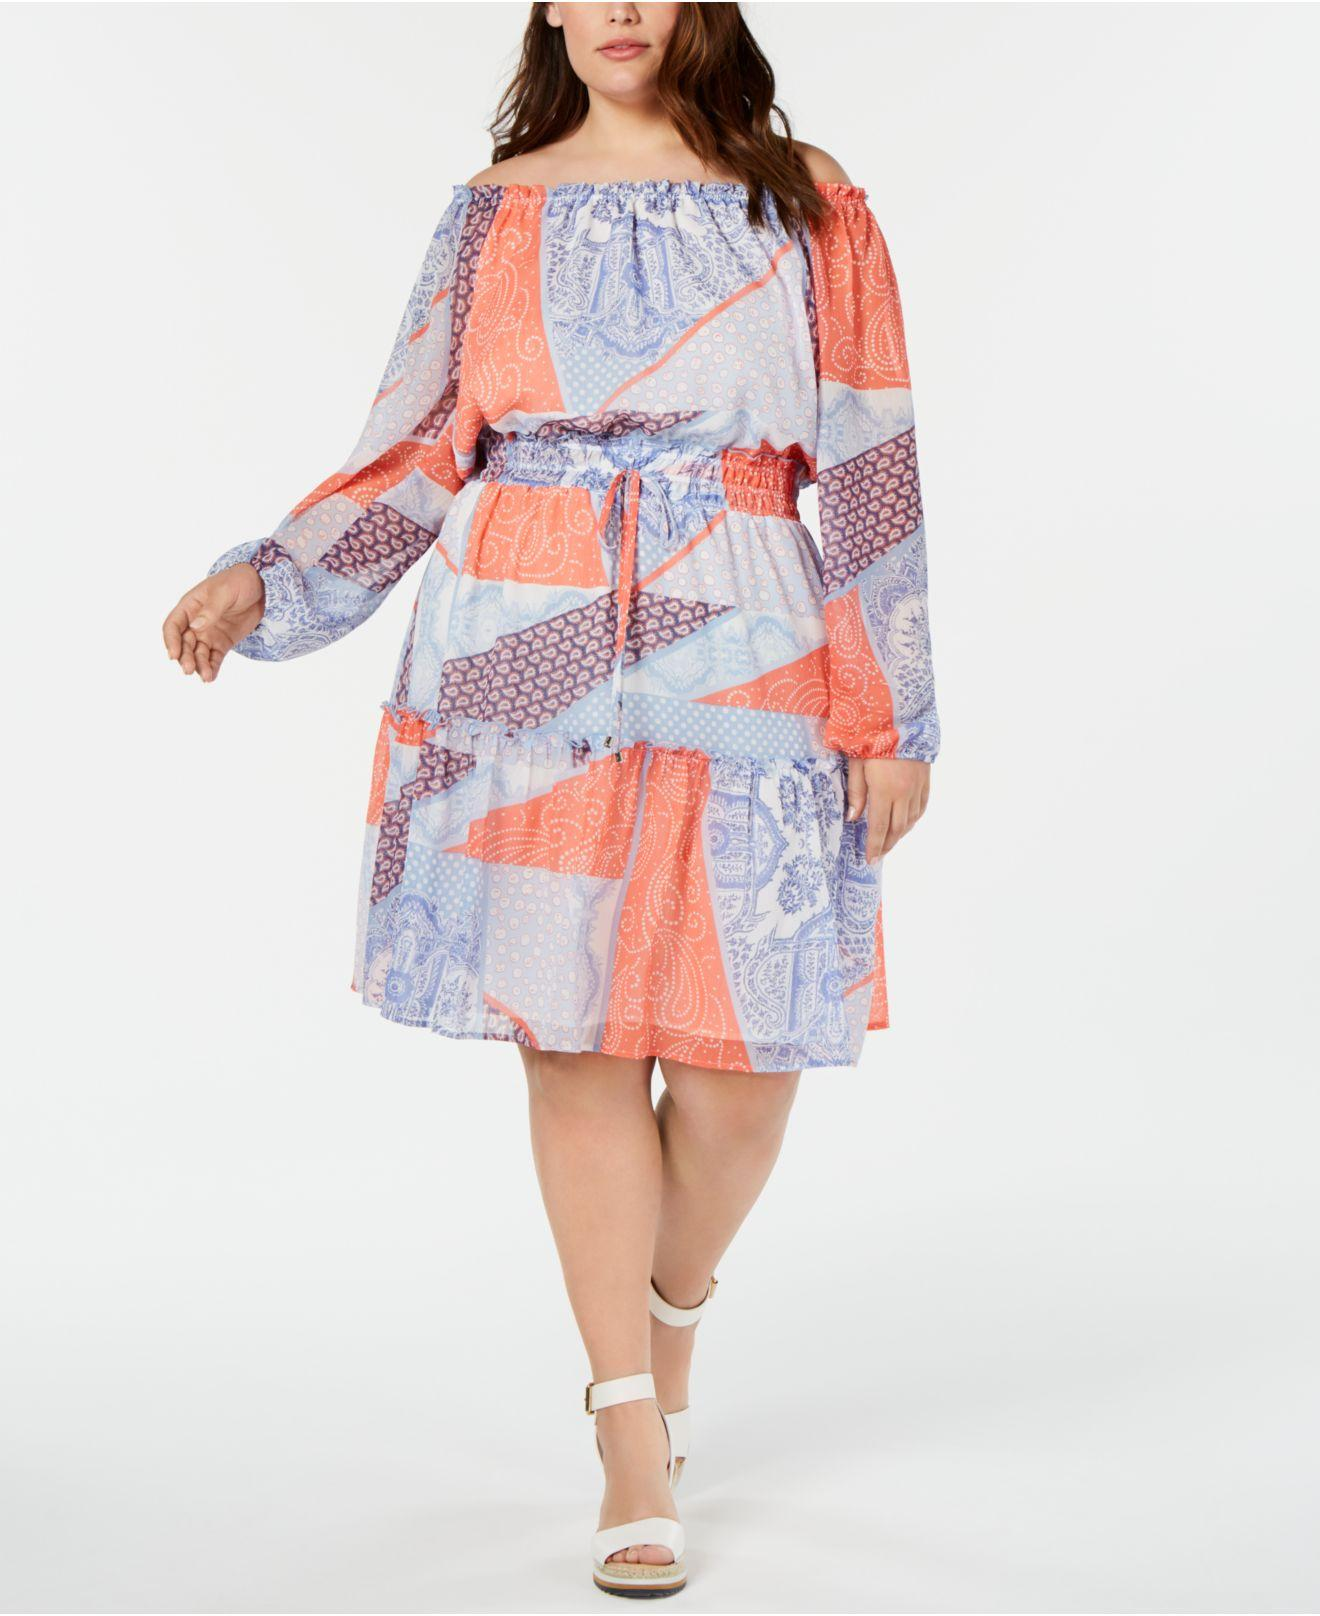 6a1154a073 Lyst - Tommy Hilfiger Plus Size Printed Off-the-shoulder Dress in Blue